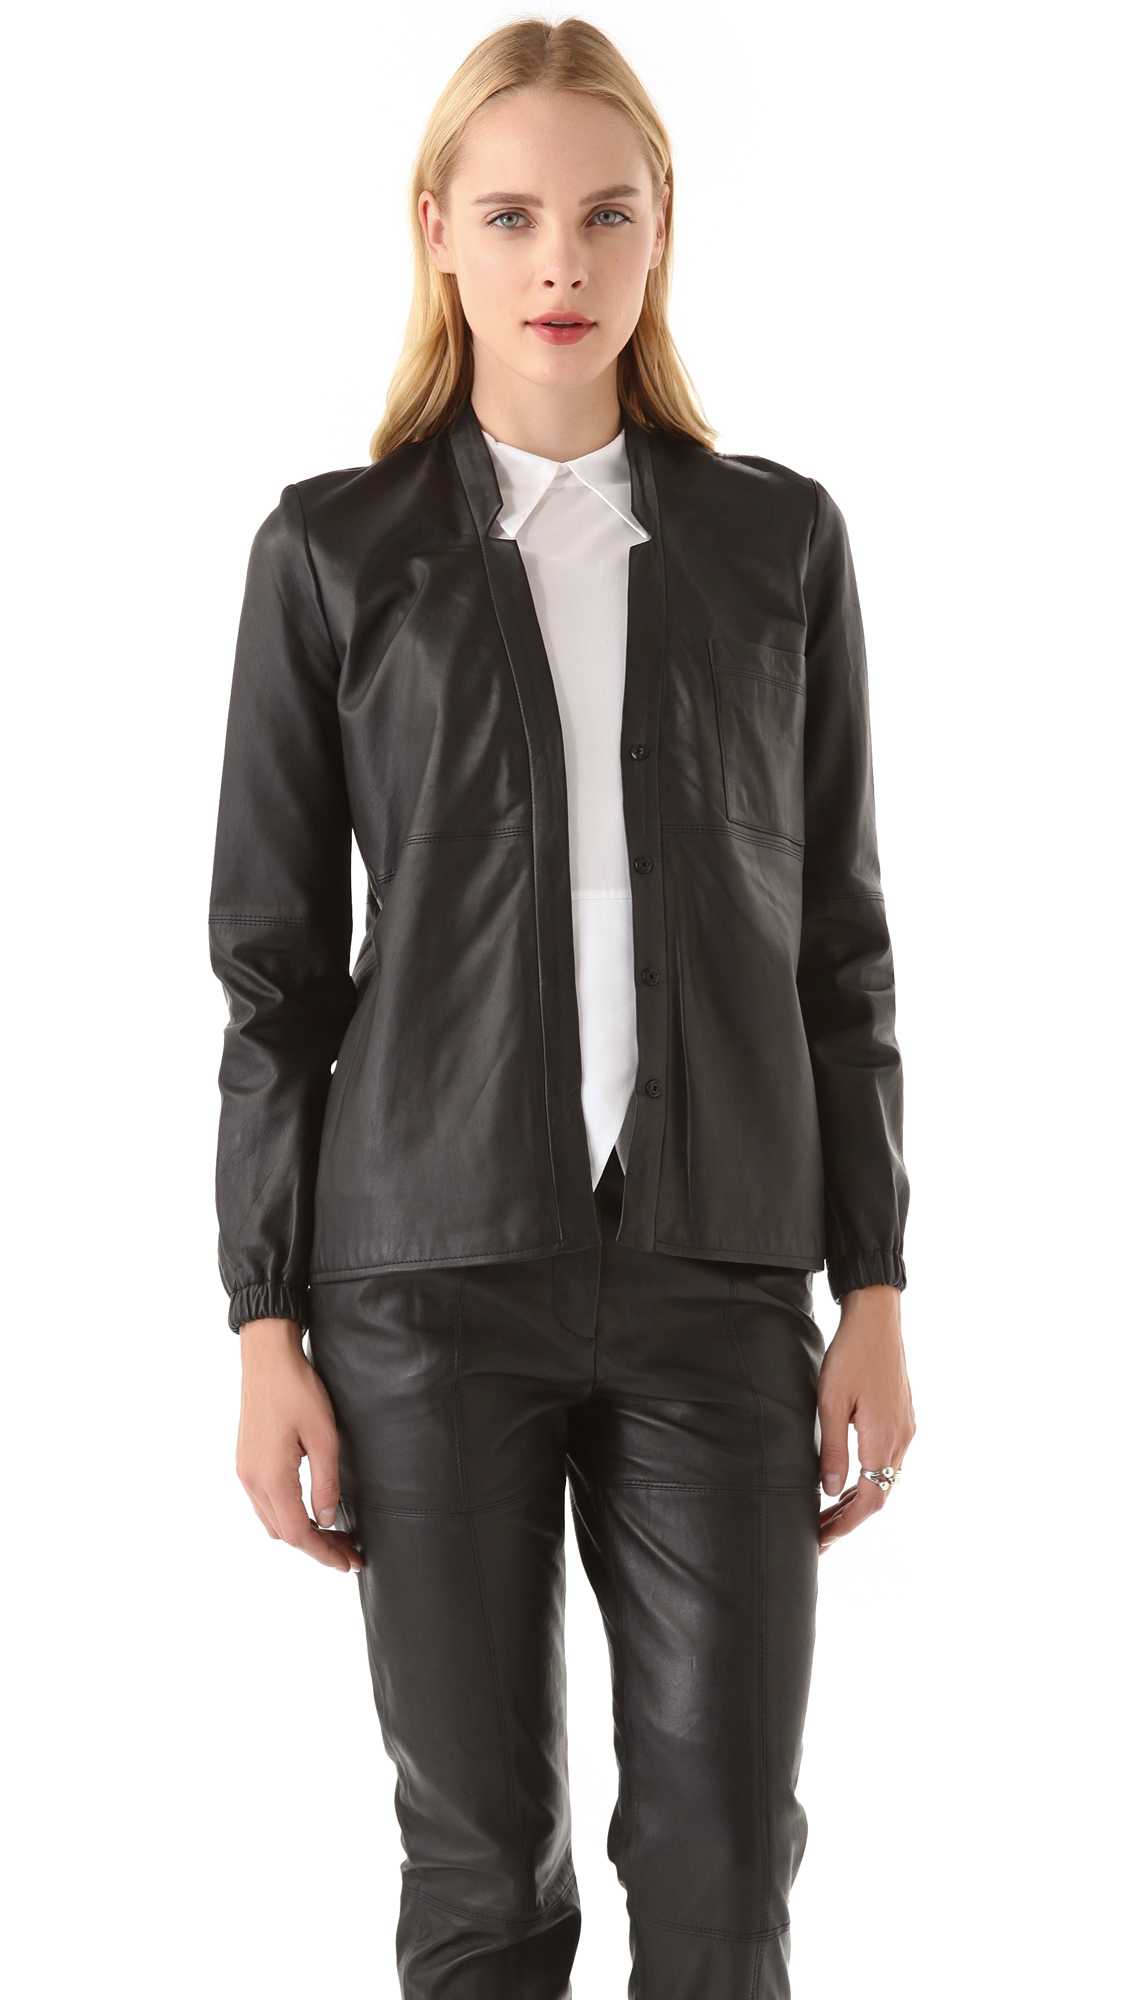 Lyst - Yigal Azrouël Leather Blouse in Black